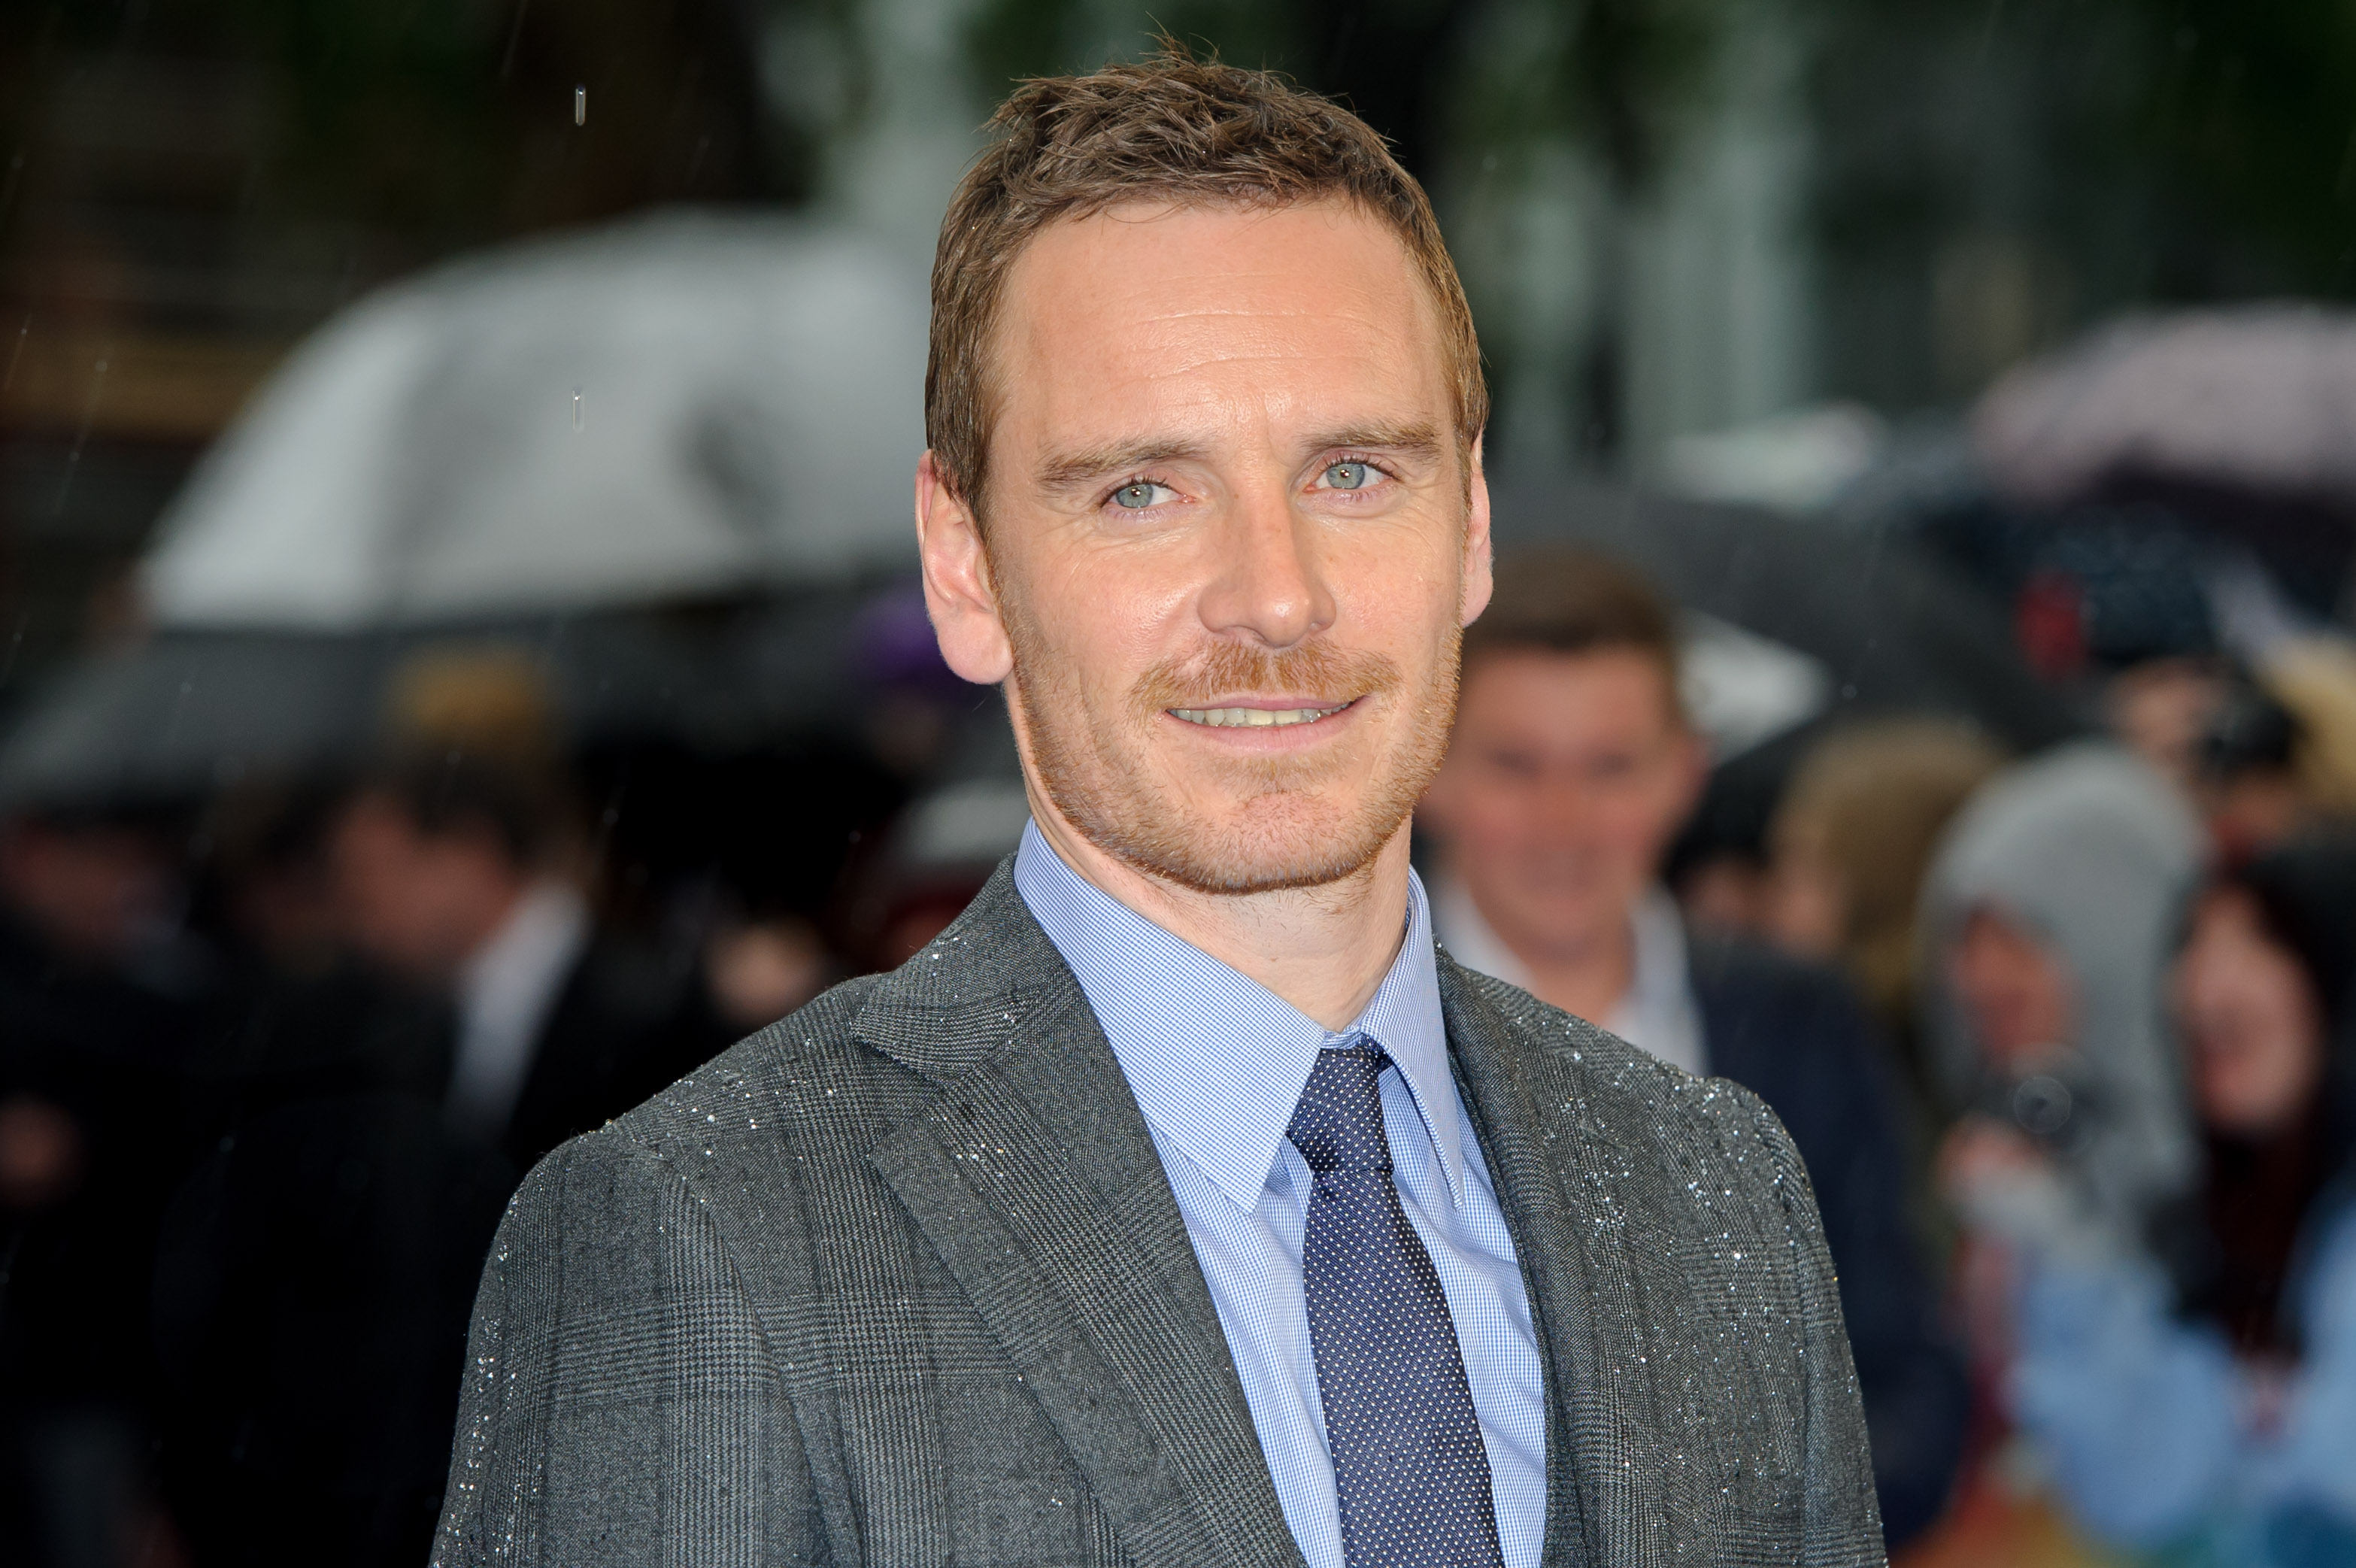 Michael Fassbender arrives for the UK Premiere of X-Men Days Of Future Past at a central London cinema, Monday, May 12, 2014. (Photo by Jonathan Short/Invision/AP)